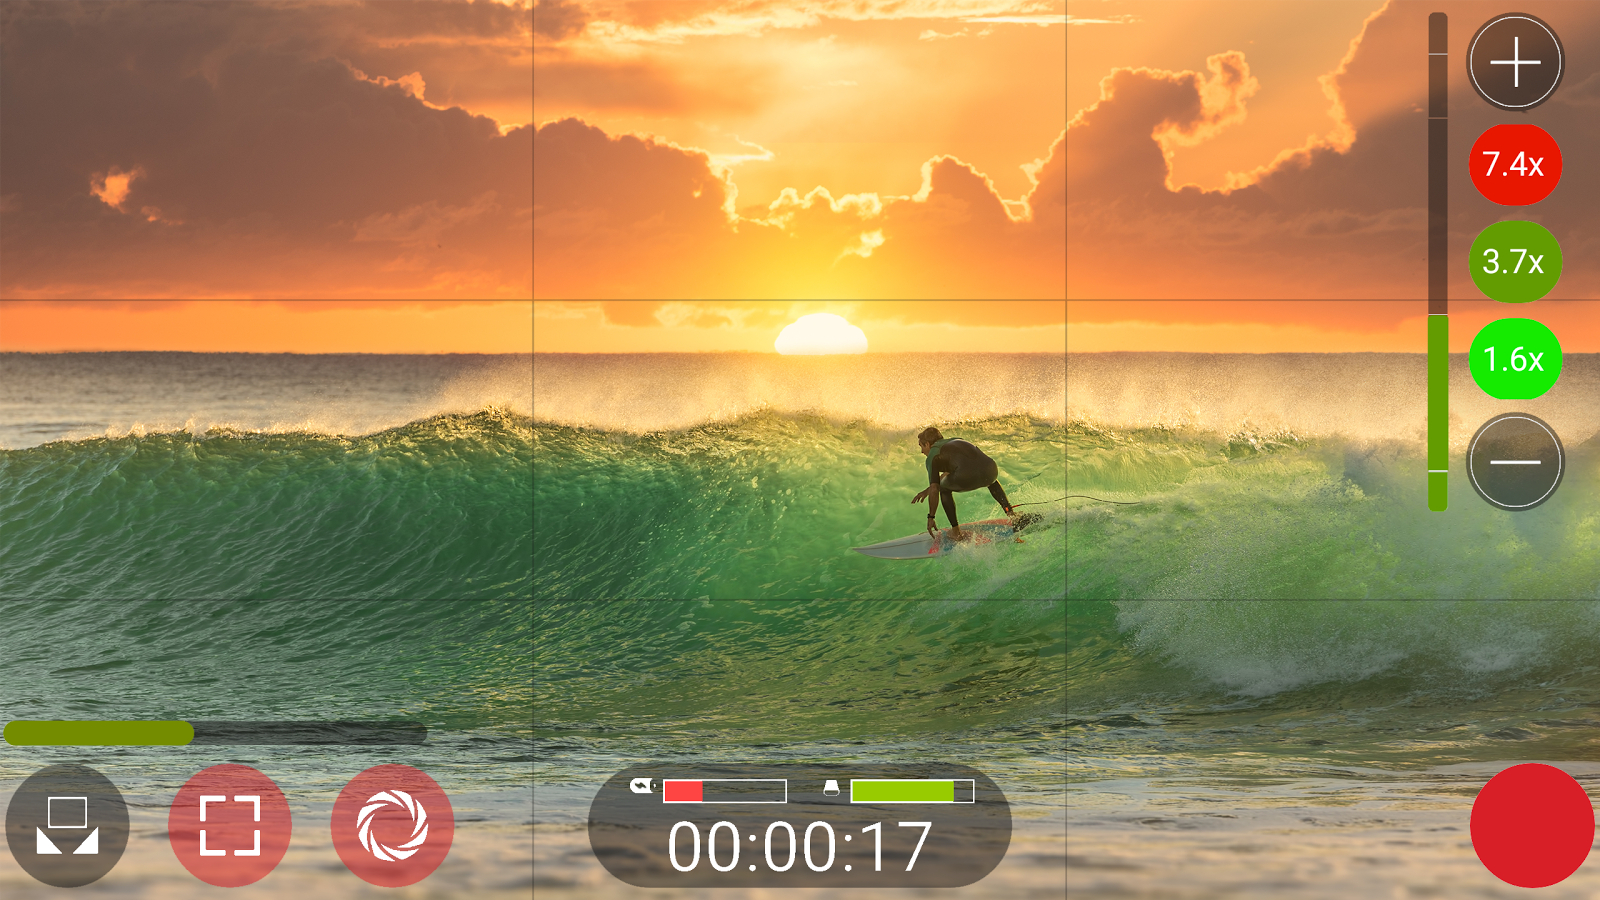 Filmic Pro APK: How to Unlock it for Free?